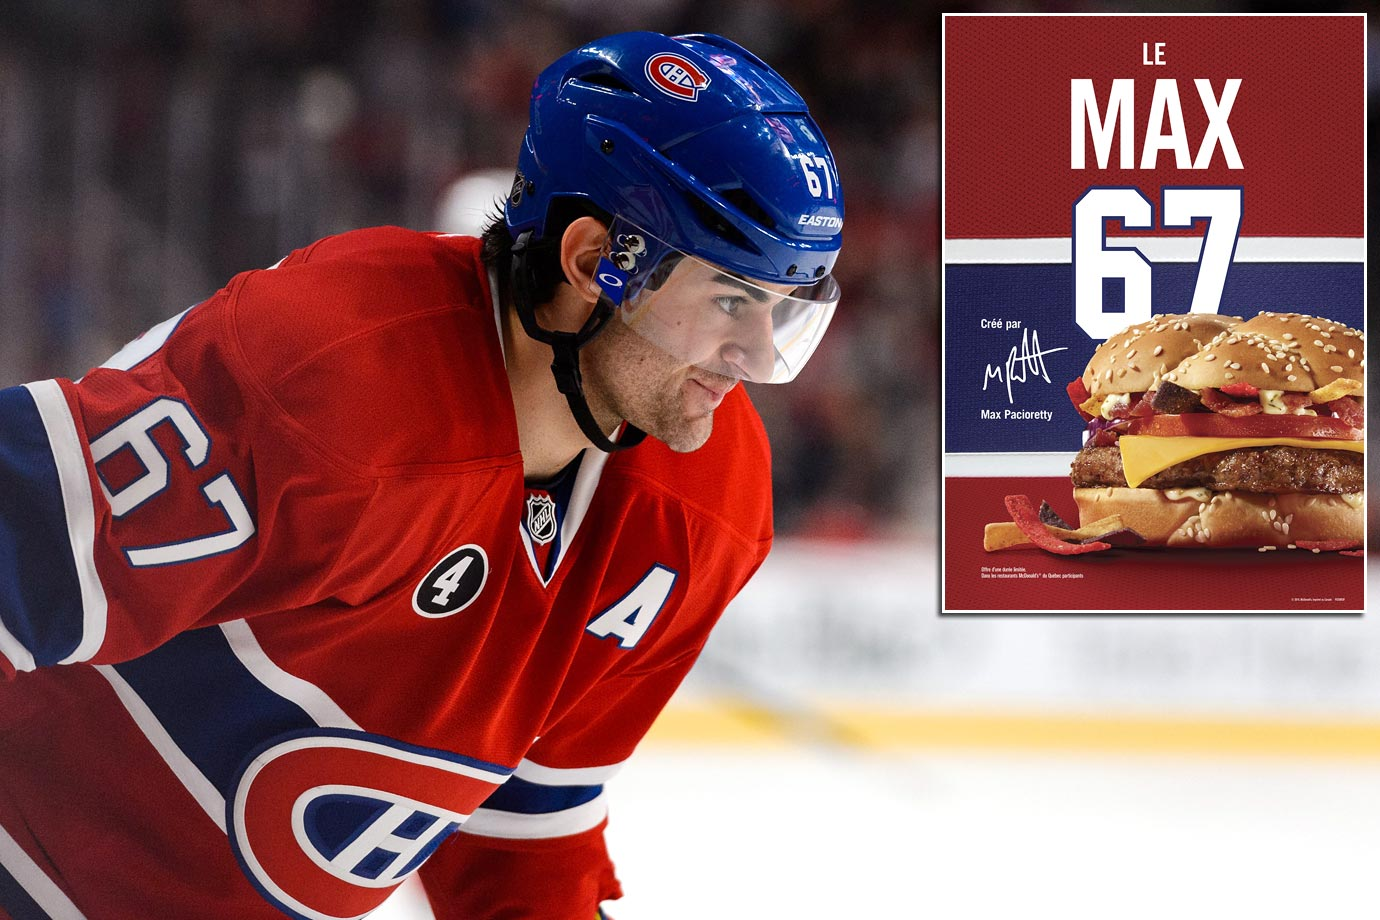 With burger madness consuming the NHL due to the exploits of Senators sensation Andrew (Hamburglar) Hammond, McDonald's in Canada honored Canadiens winger Pacioretty with an Angus beef patty topped with bacon bits, tri-color nachos, cheese, tomato, onion and nacho sauce. Here are 12 more notable comestibles that offer a distinct hockey flavor.